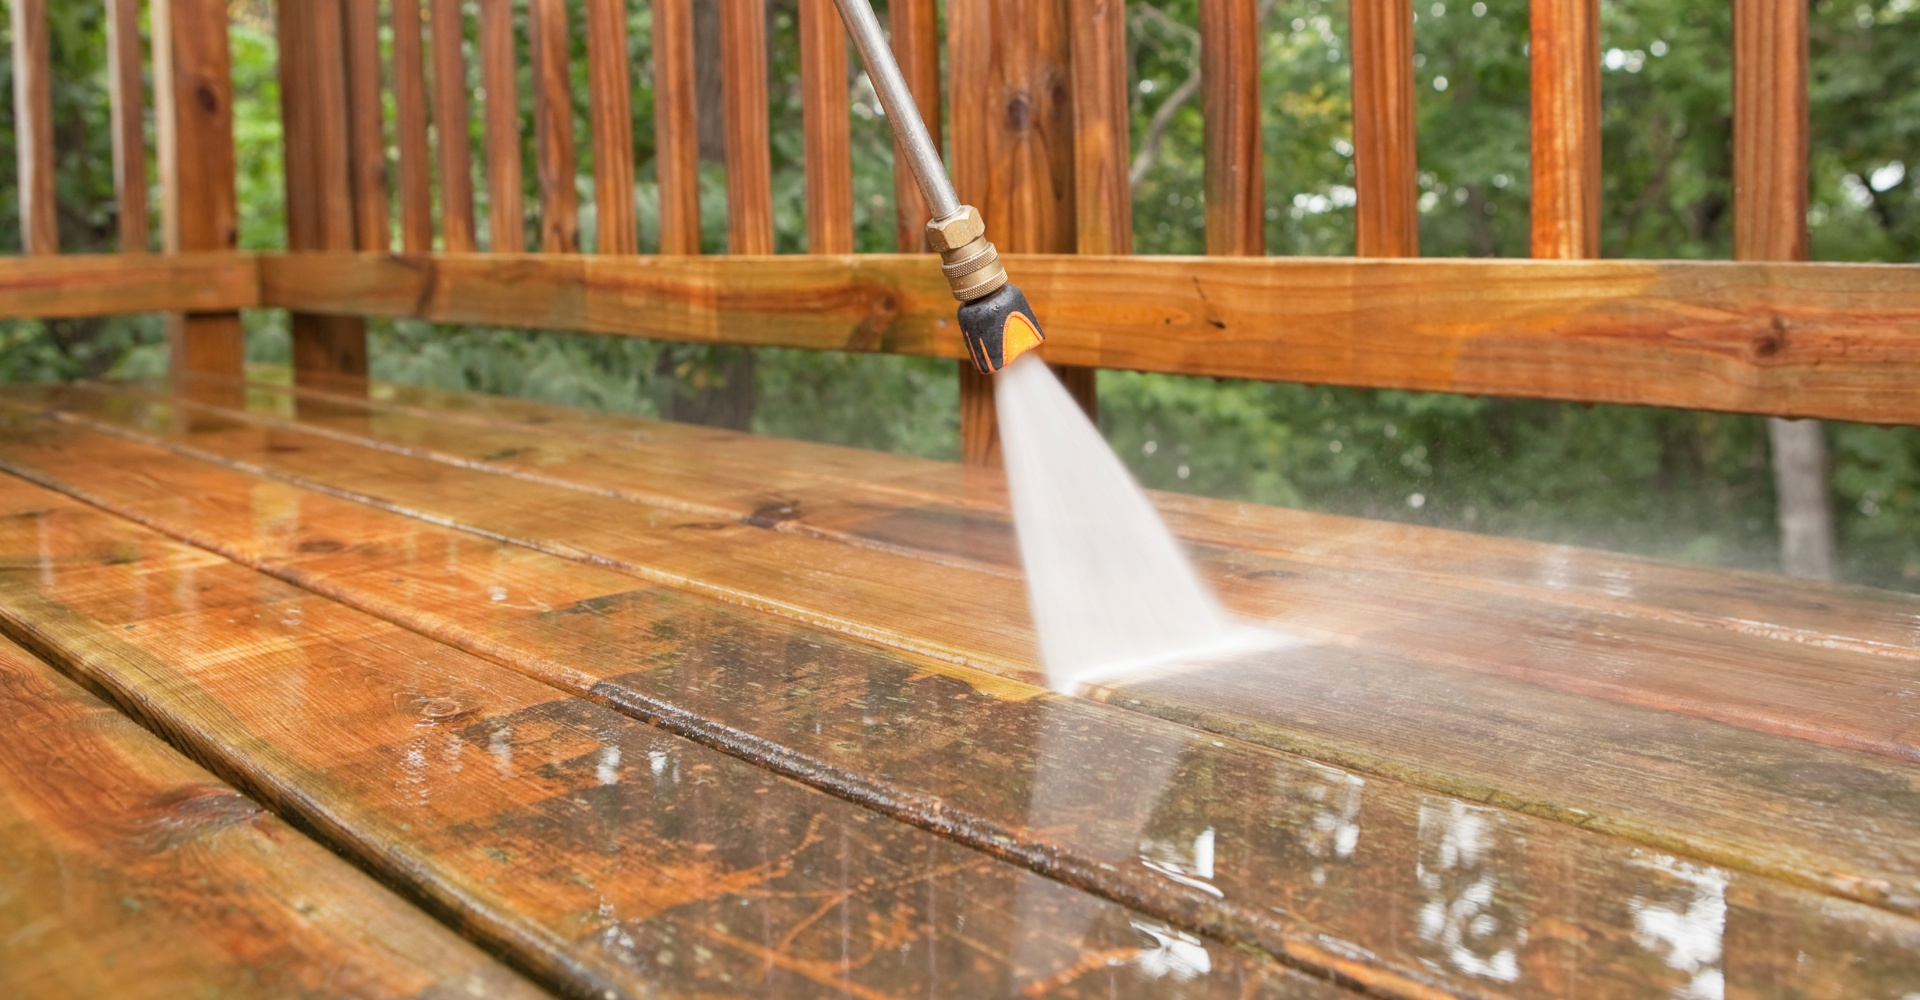 Power washing exterior cleaning ocean power washing - How to clean house exterior before painting ...